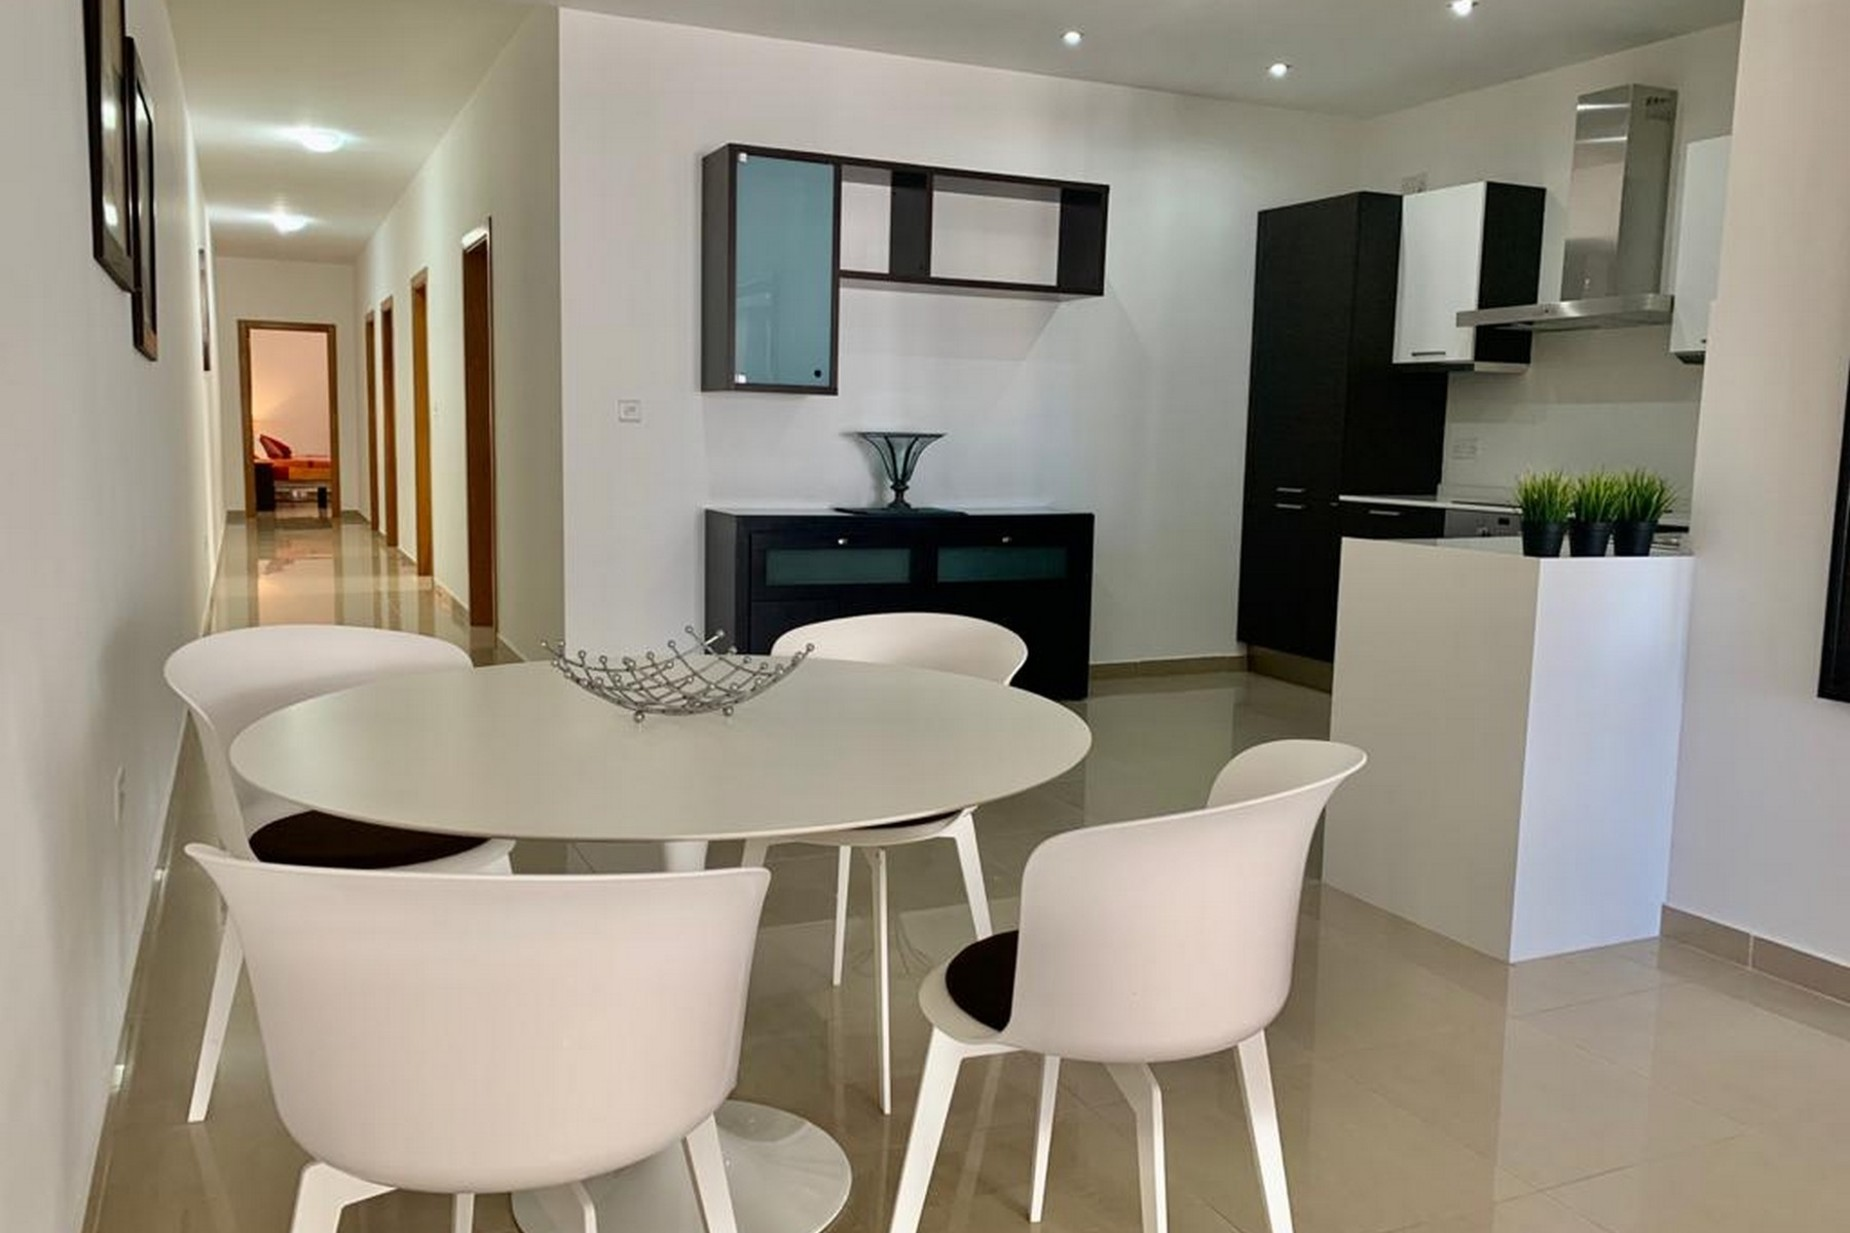 3 bed Apartment For Rent in Ibragg, Ibragg - thumb 14